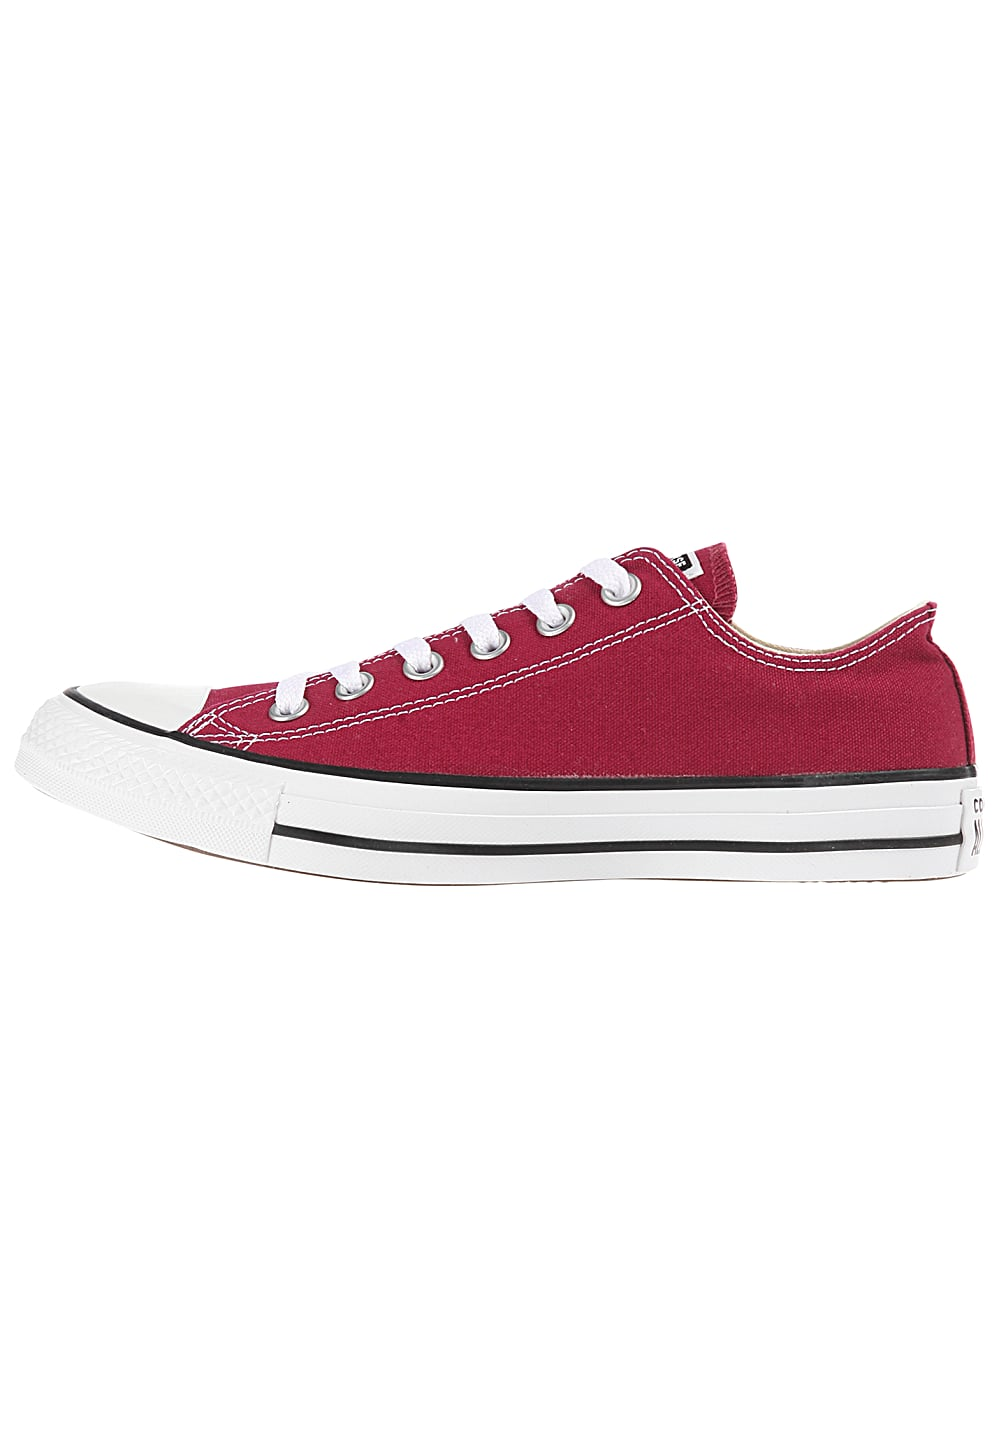 Converse Chuck Taylor All Star Ox Sneaker Rot